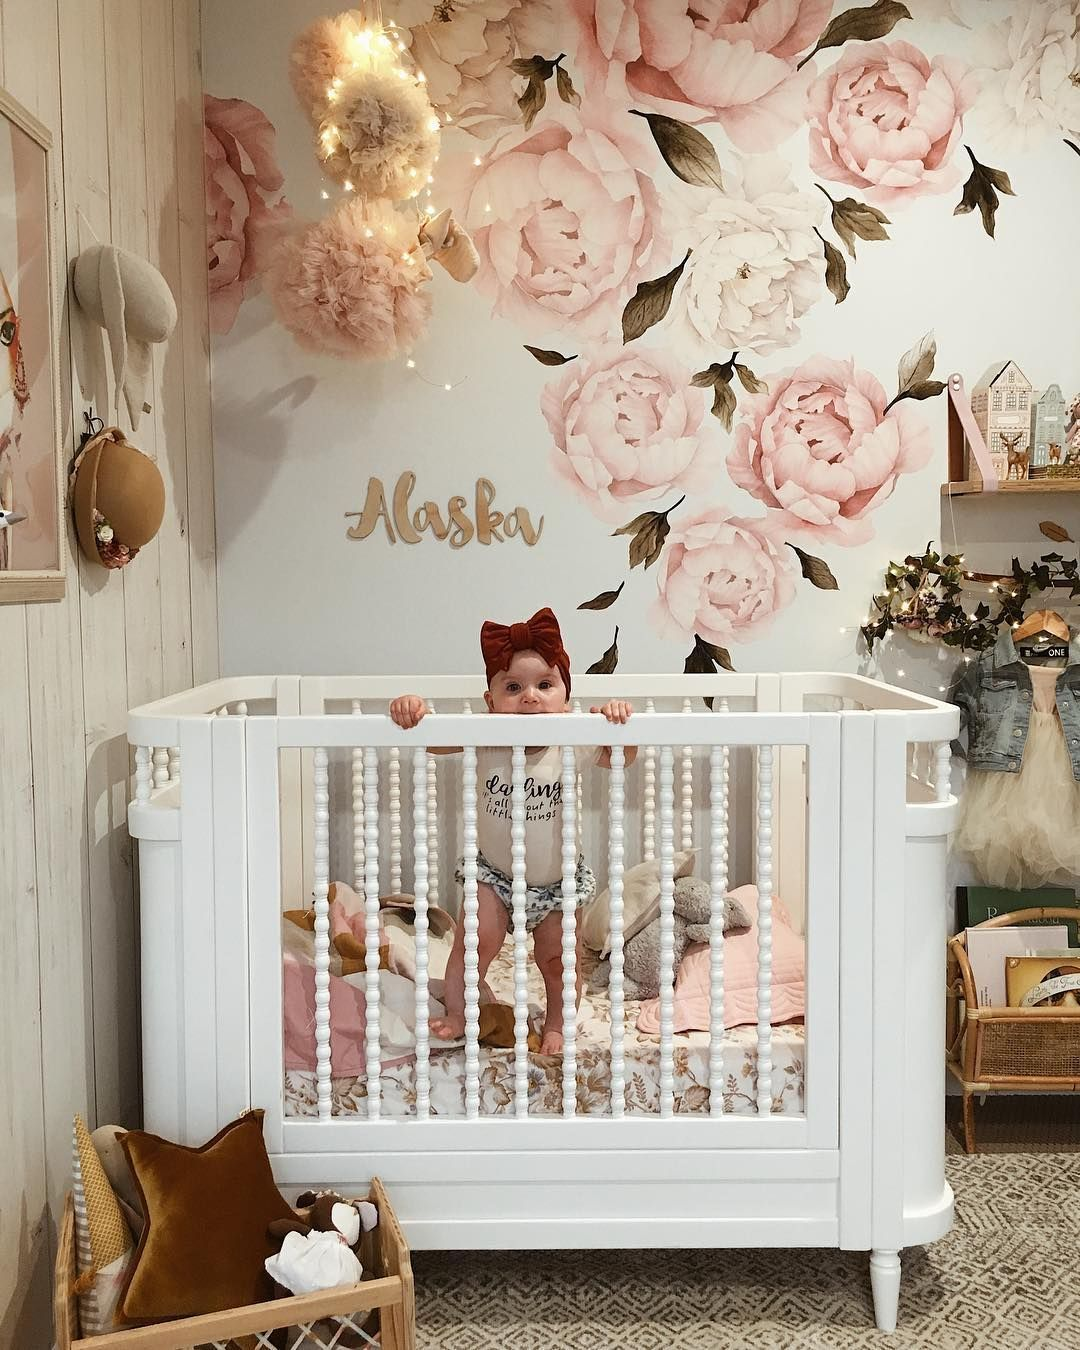 Baby Room Accessories: 27 Cute Baby Room Ideas: Nursery Decor For Boy, Girl And